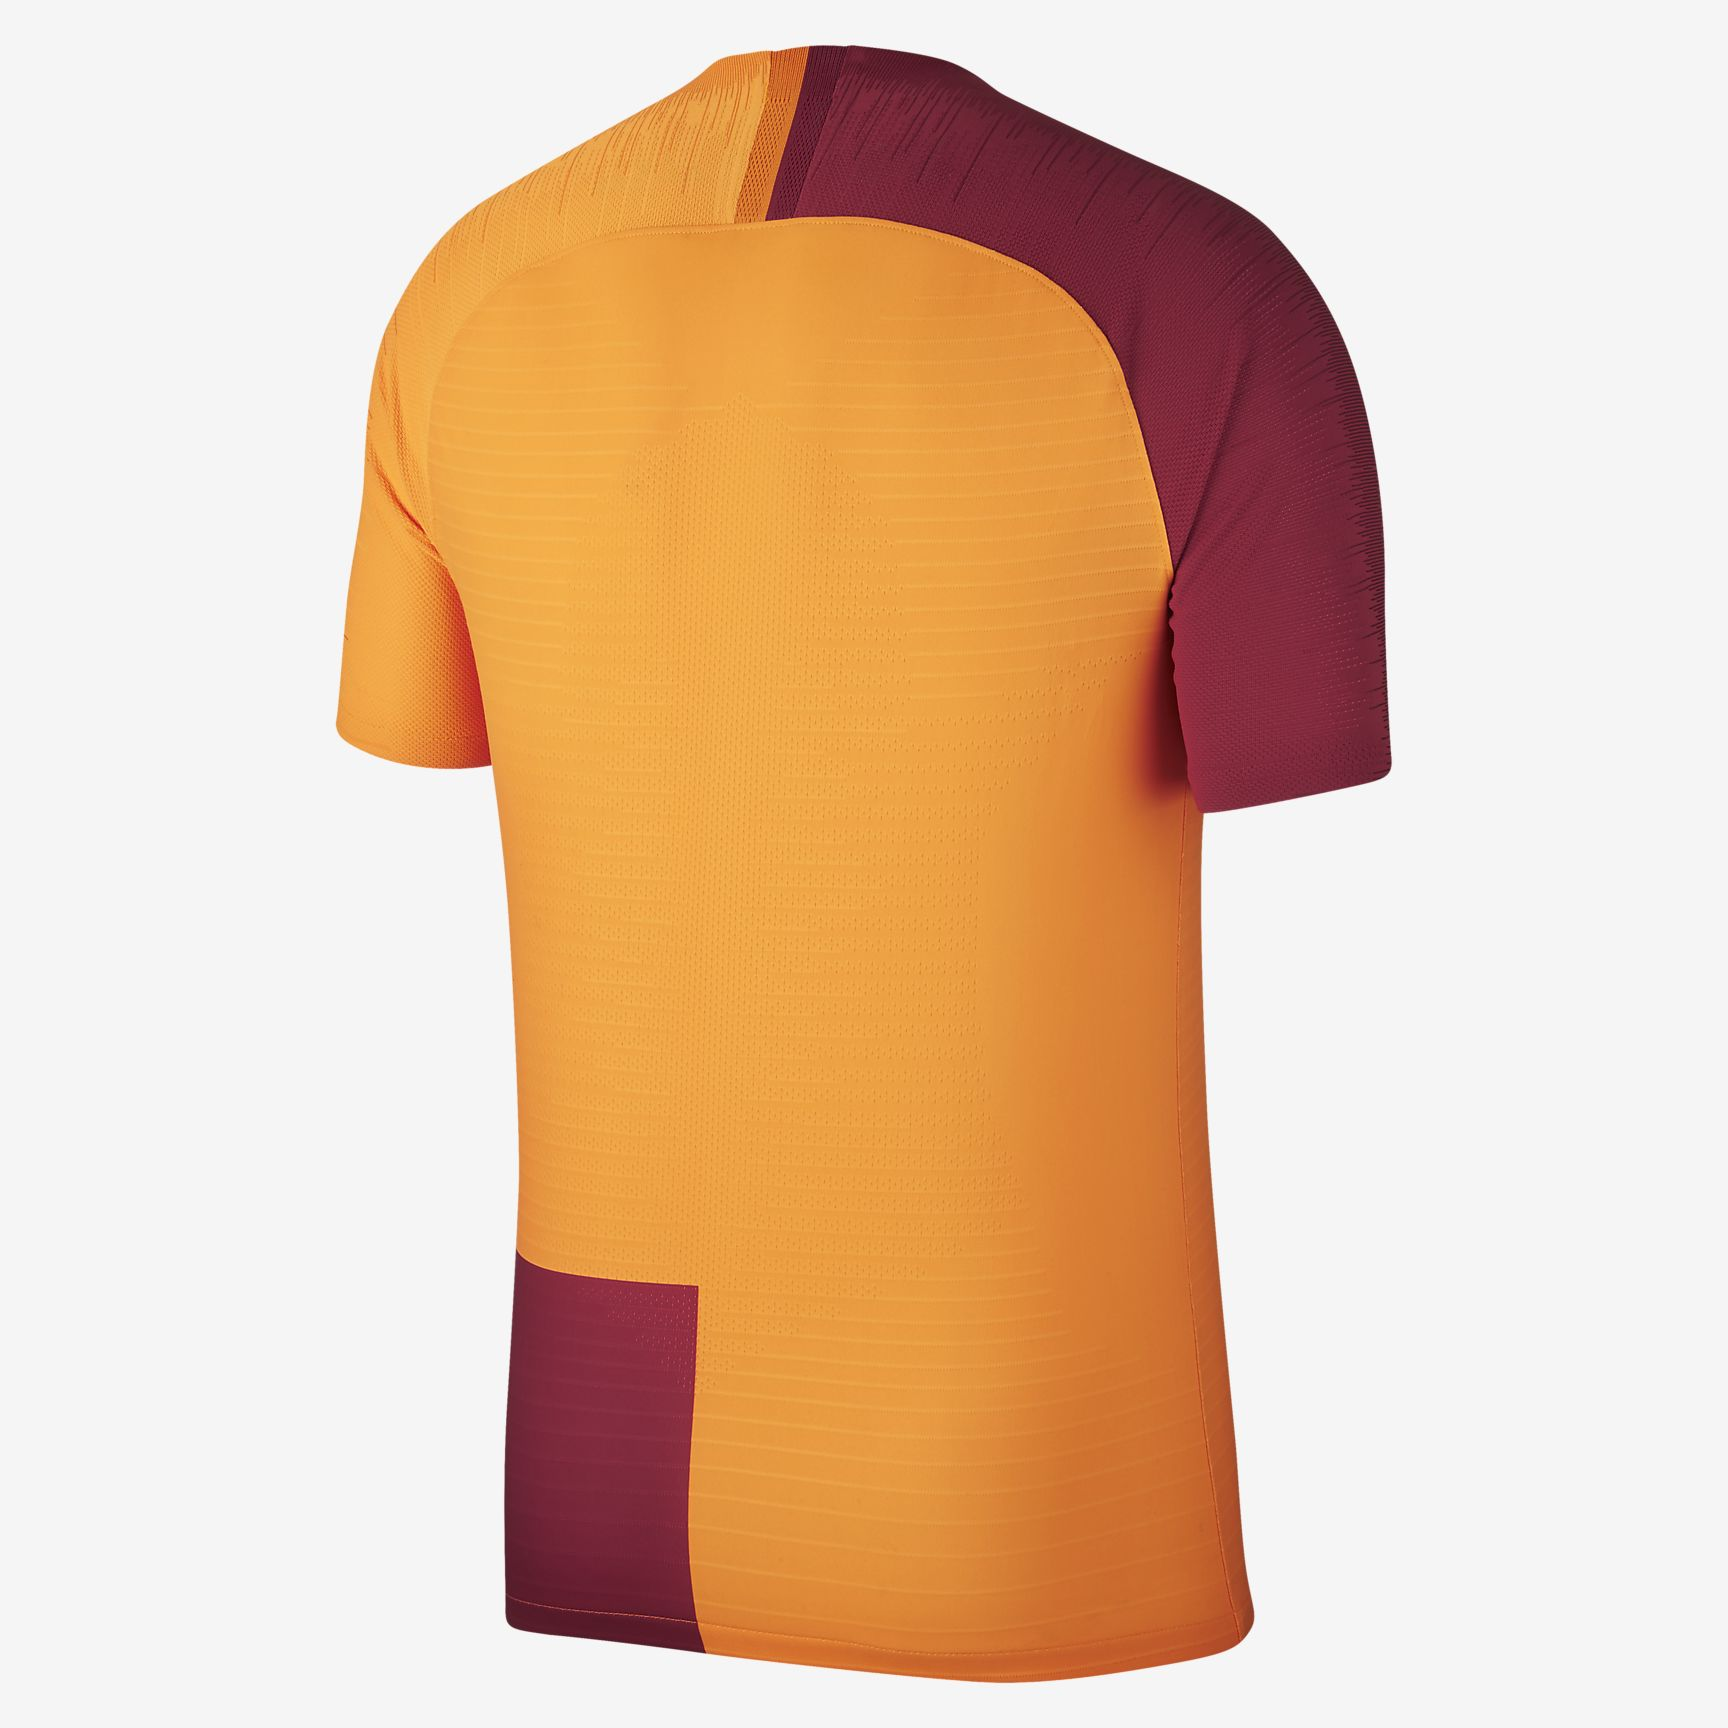 https://c.static-nike.com/a/images/t_PDP_1728_v1/f_auto/hhv75vcm6uv6wrtyiyyu/2018-19-galatasaray-sk-vapor-match-home-football-shirt-gC8crp.jpg